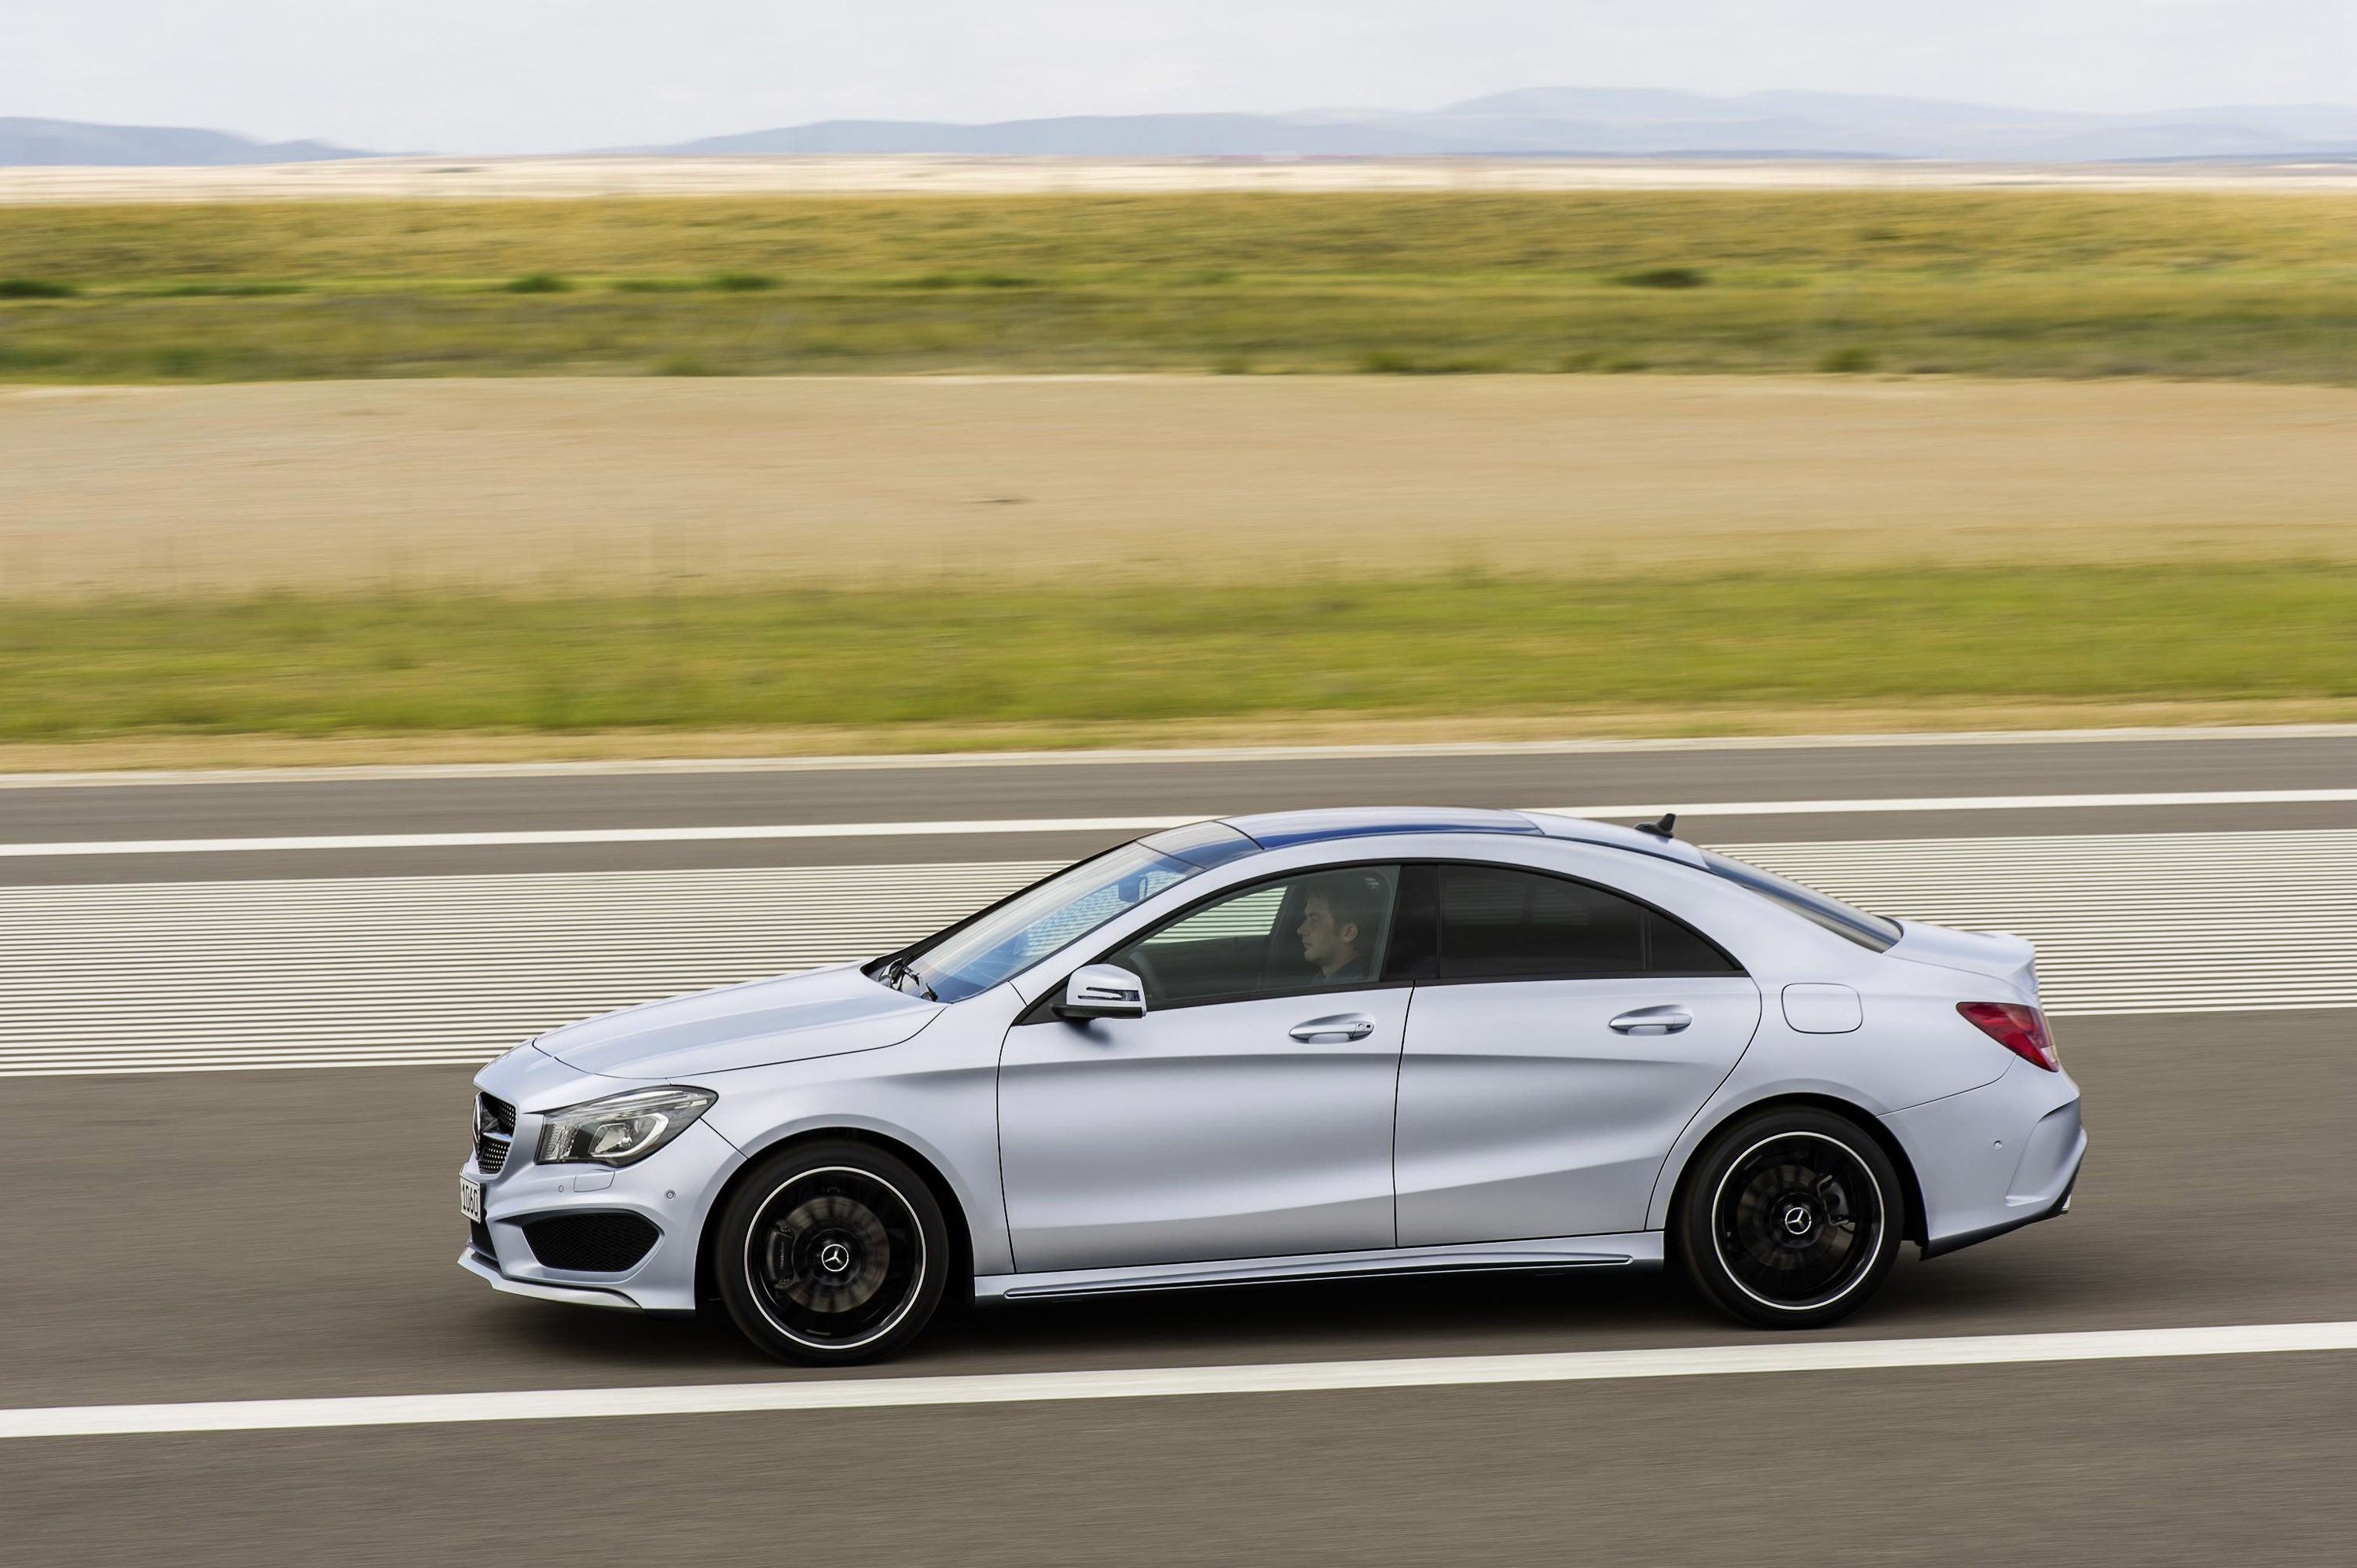 Mercedes benz establishes new segment with cla class for 2014 mercedes benz cla class review